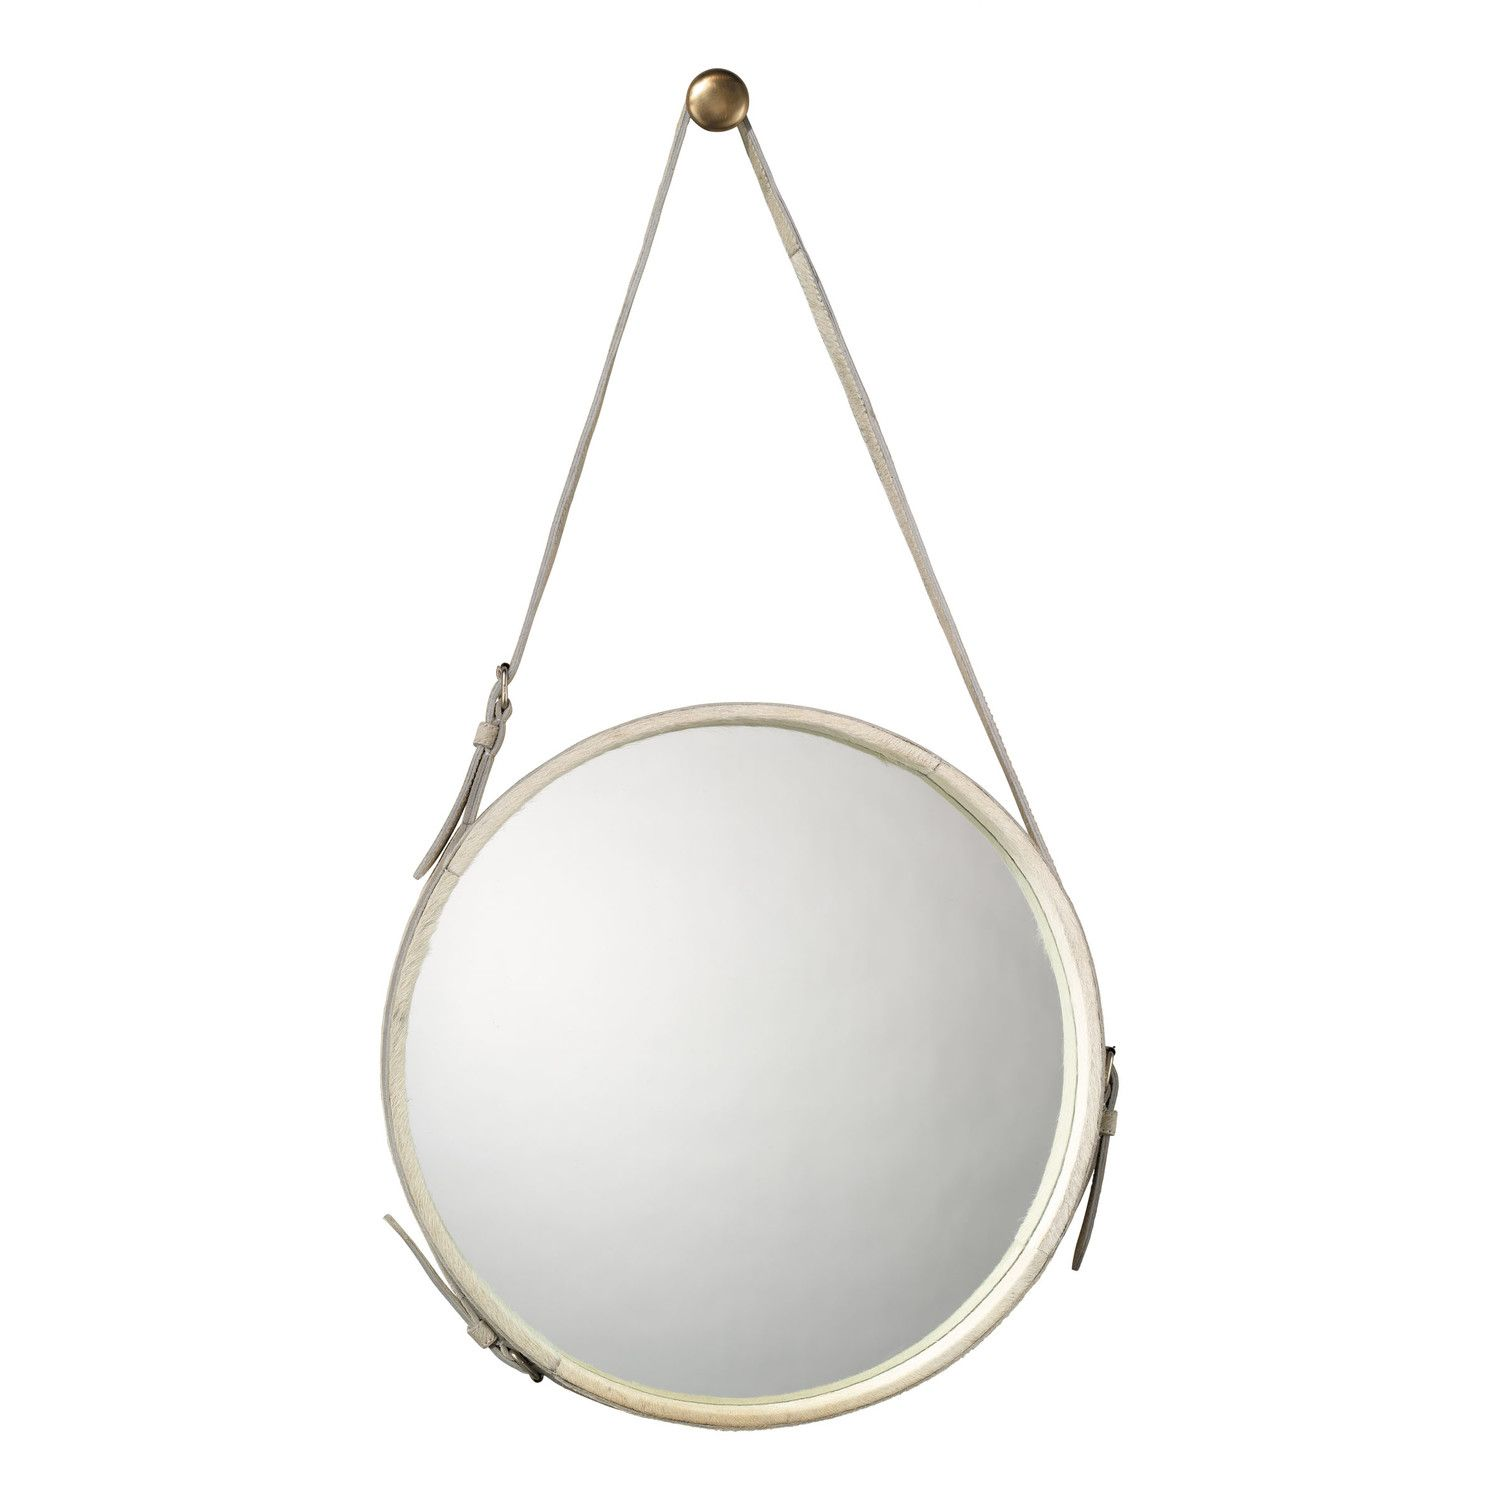 Round white hide mirror with strap includes brass hanging knob round white hide mirror with strap includes brass hanging knob also available as round leather mirror amipublicfo Gallery